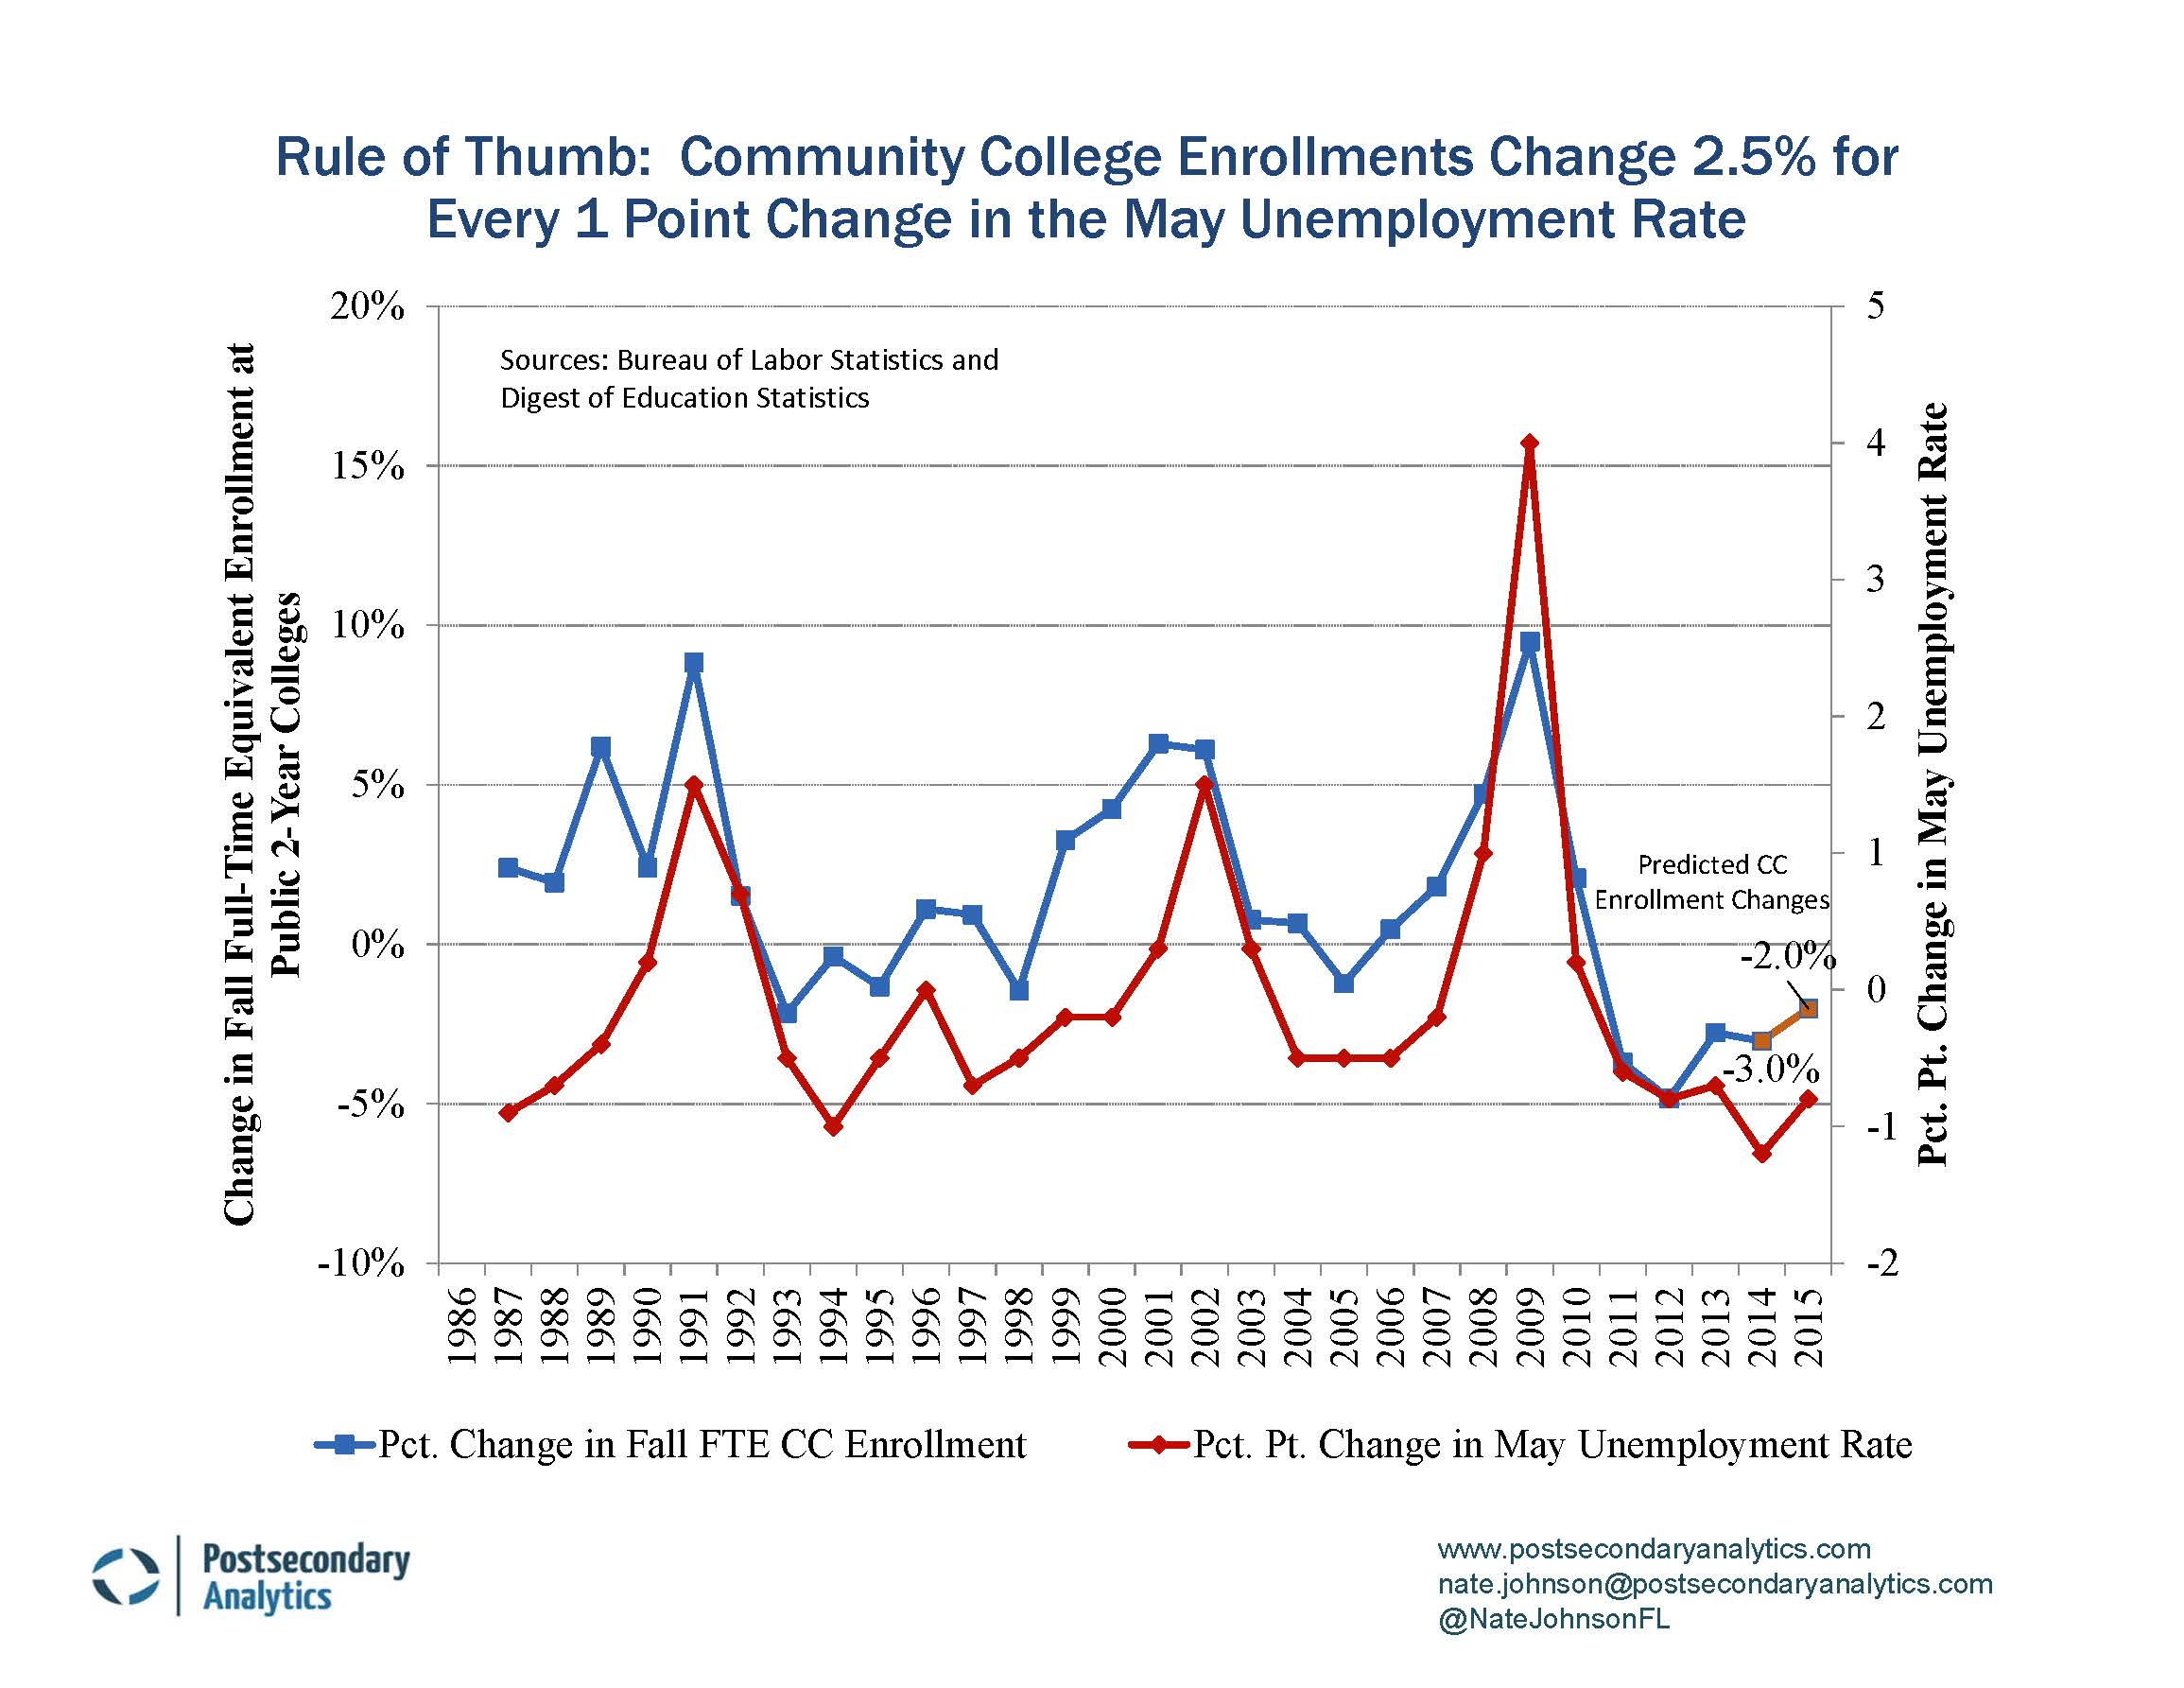 the unemployment rate community college enrollments and tough for every 1 percentage point change in the unemployment rate from to community colleges can expect a 2 5 percent change up or down in fall